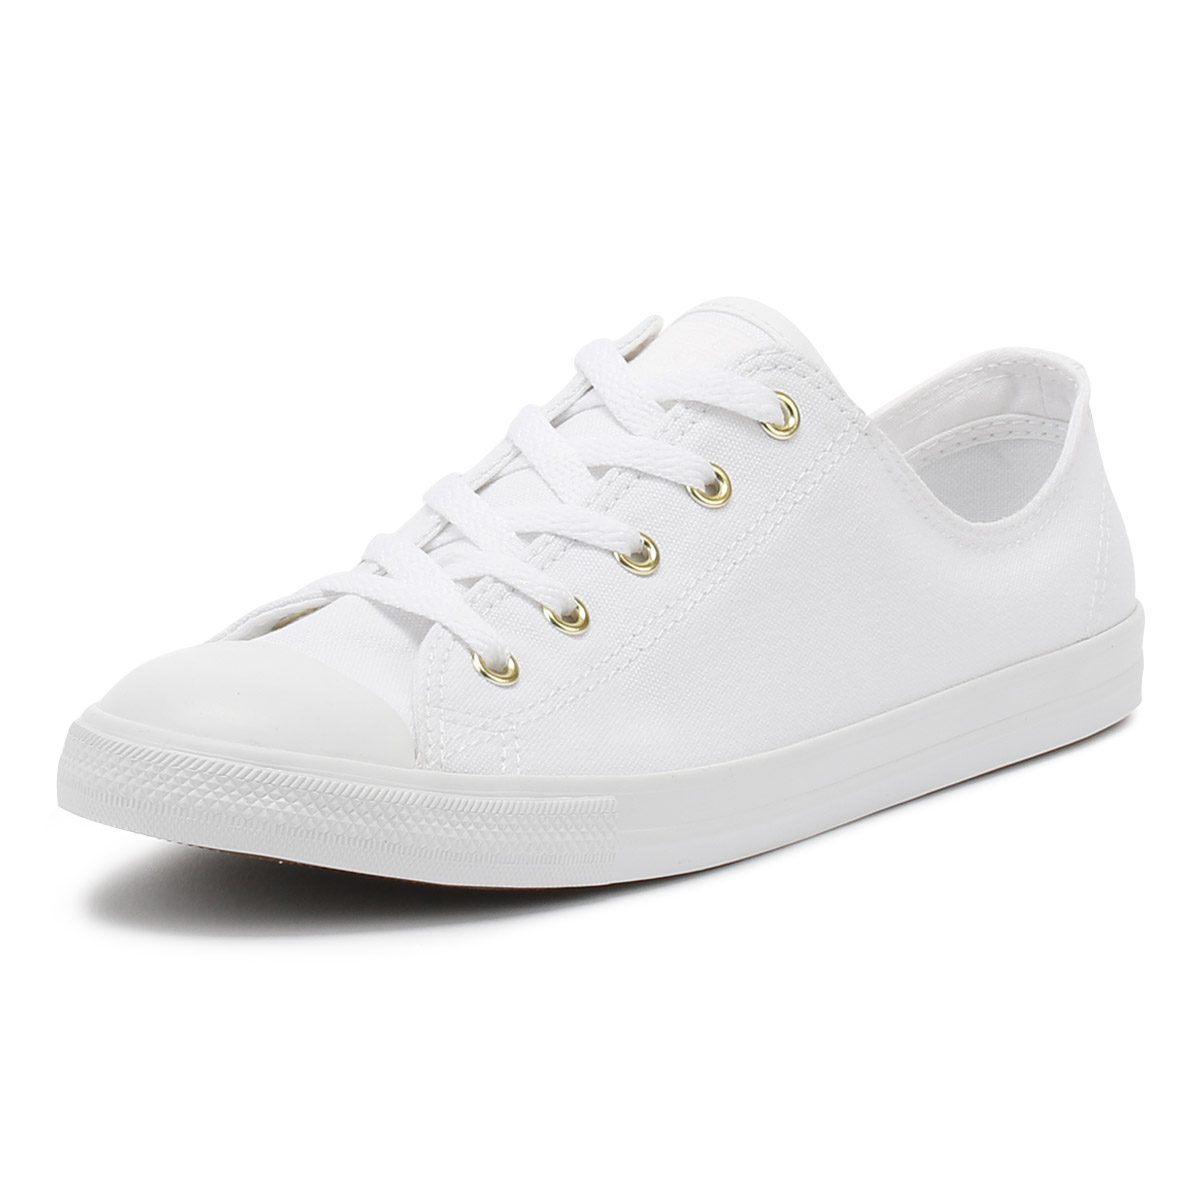 57eb2869235 Details about Converse Chuck Taylor All Star Womens Ox Trainers White Dainty  Ox Casual Shoes